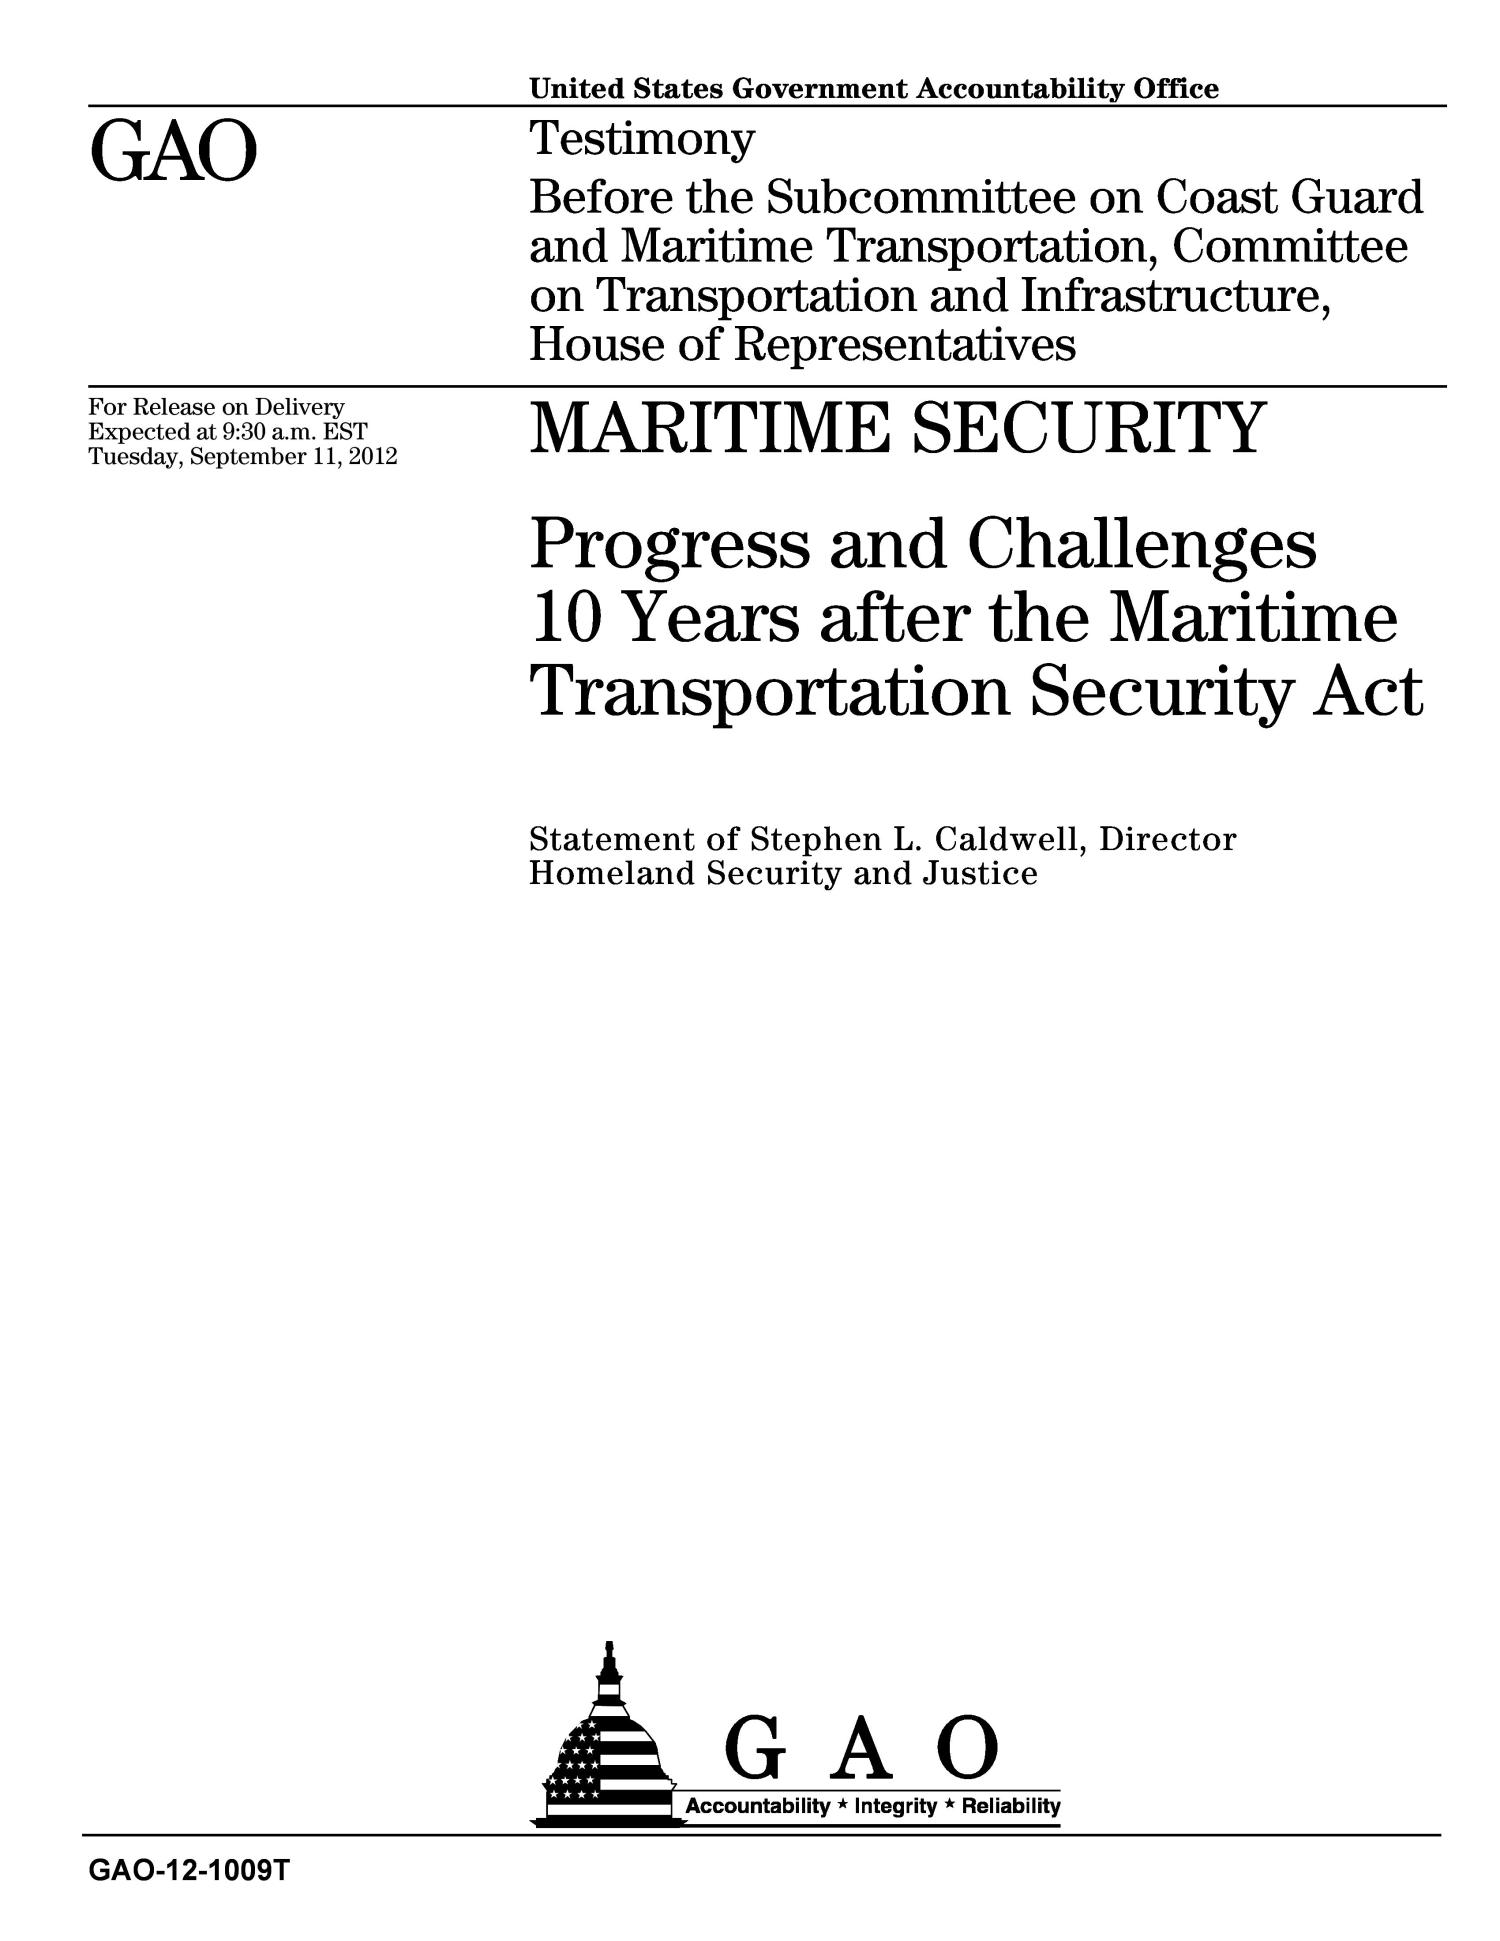 Maritime Security: Progress and Challenges 10 Years after the Maritime Transportation Security Act                                                                                                      [Sequence #]: 1 of 54